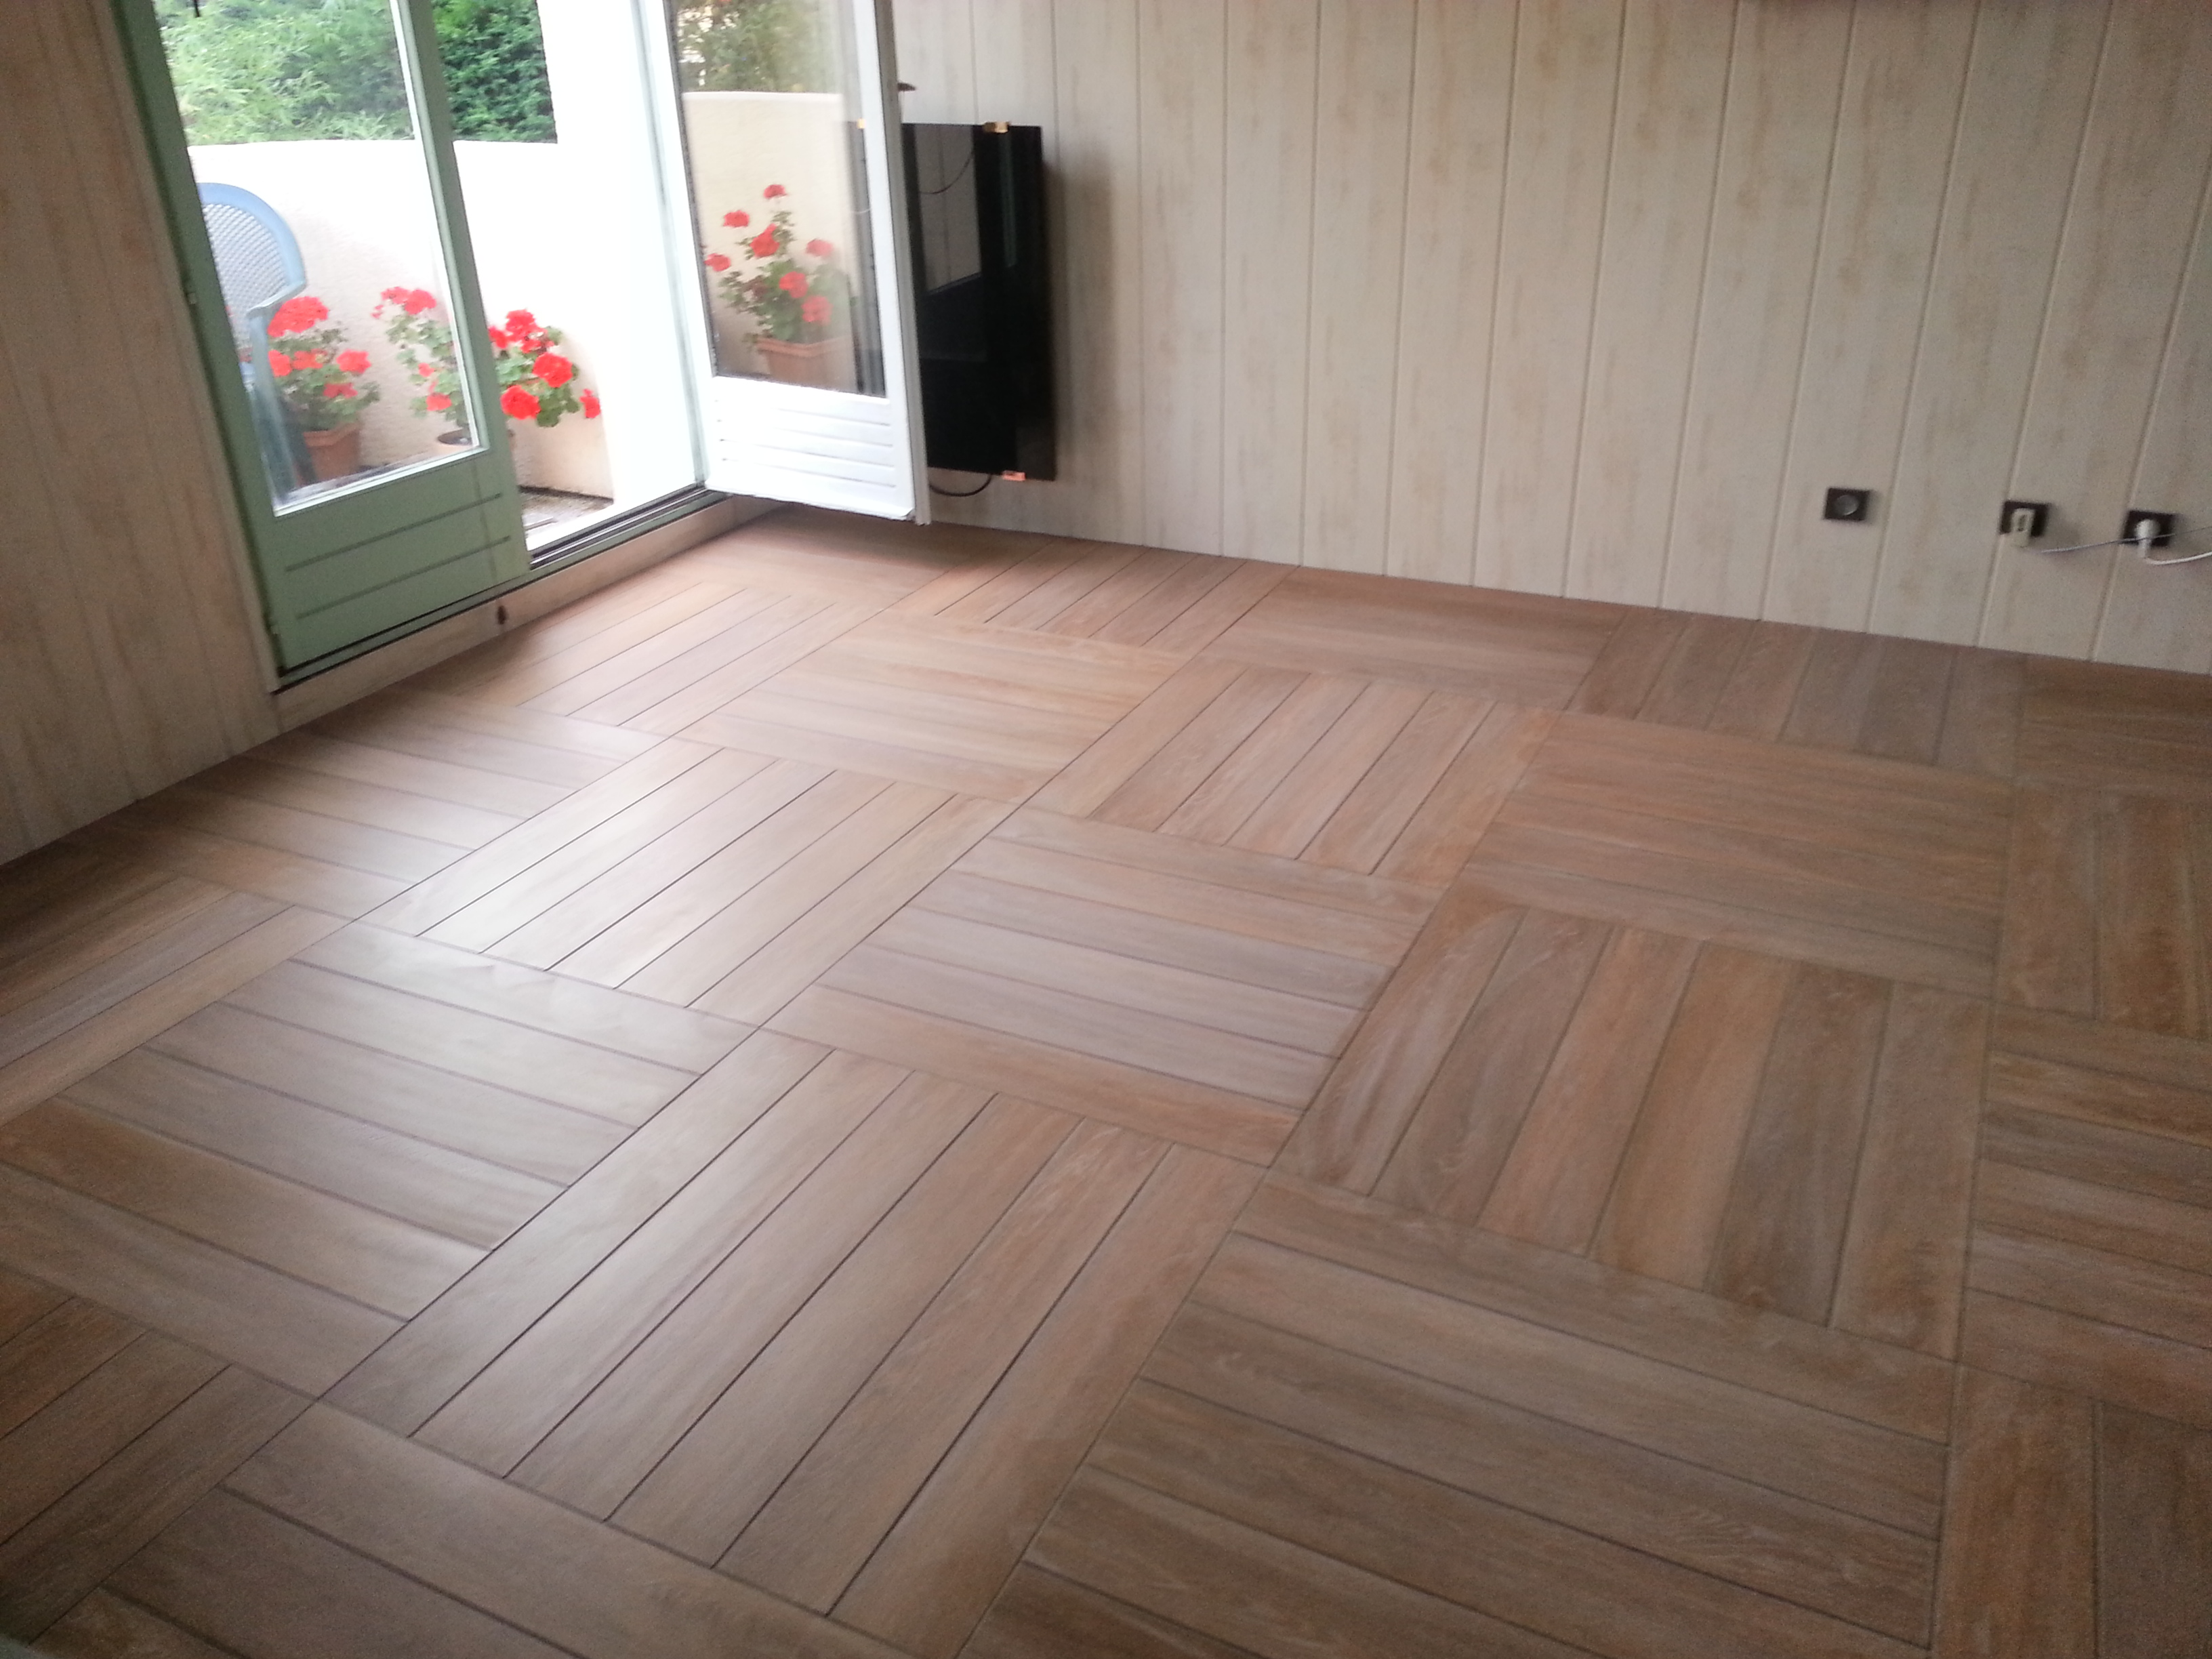 Pose de carrelage imitation parquet for Parquet carrelage